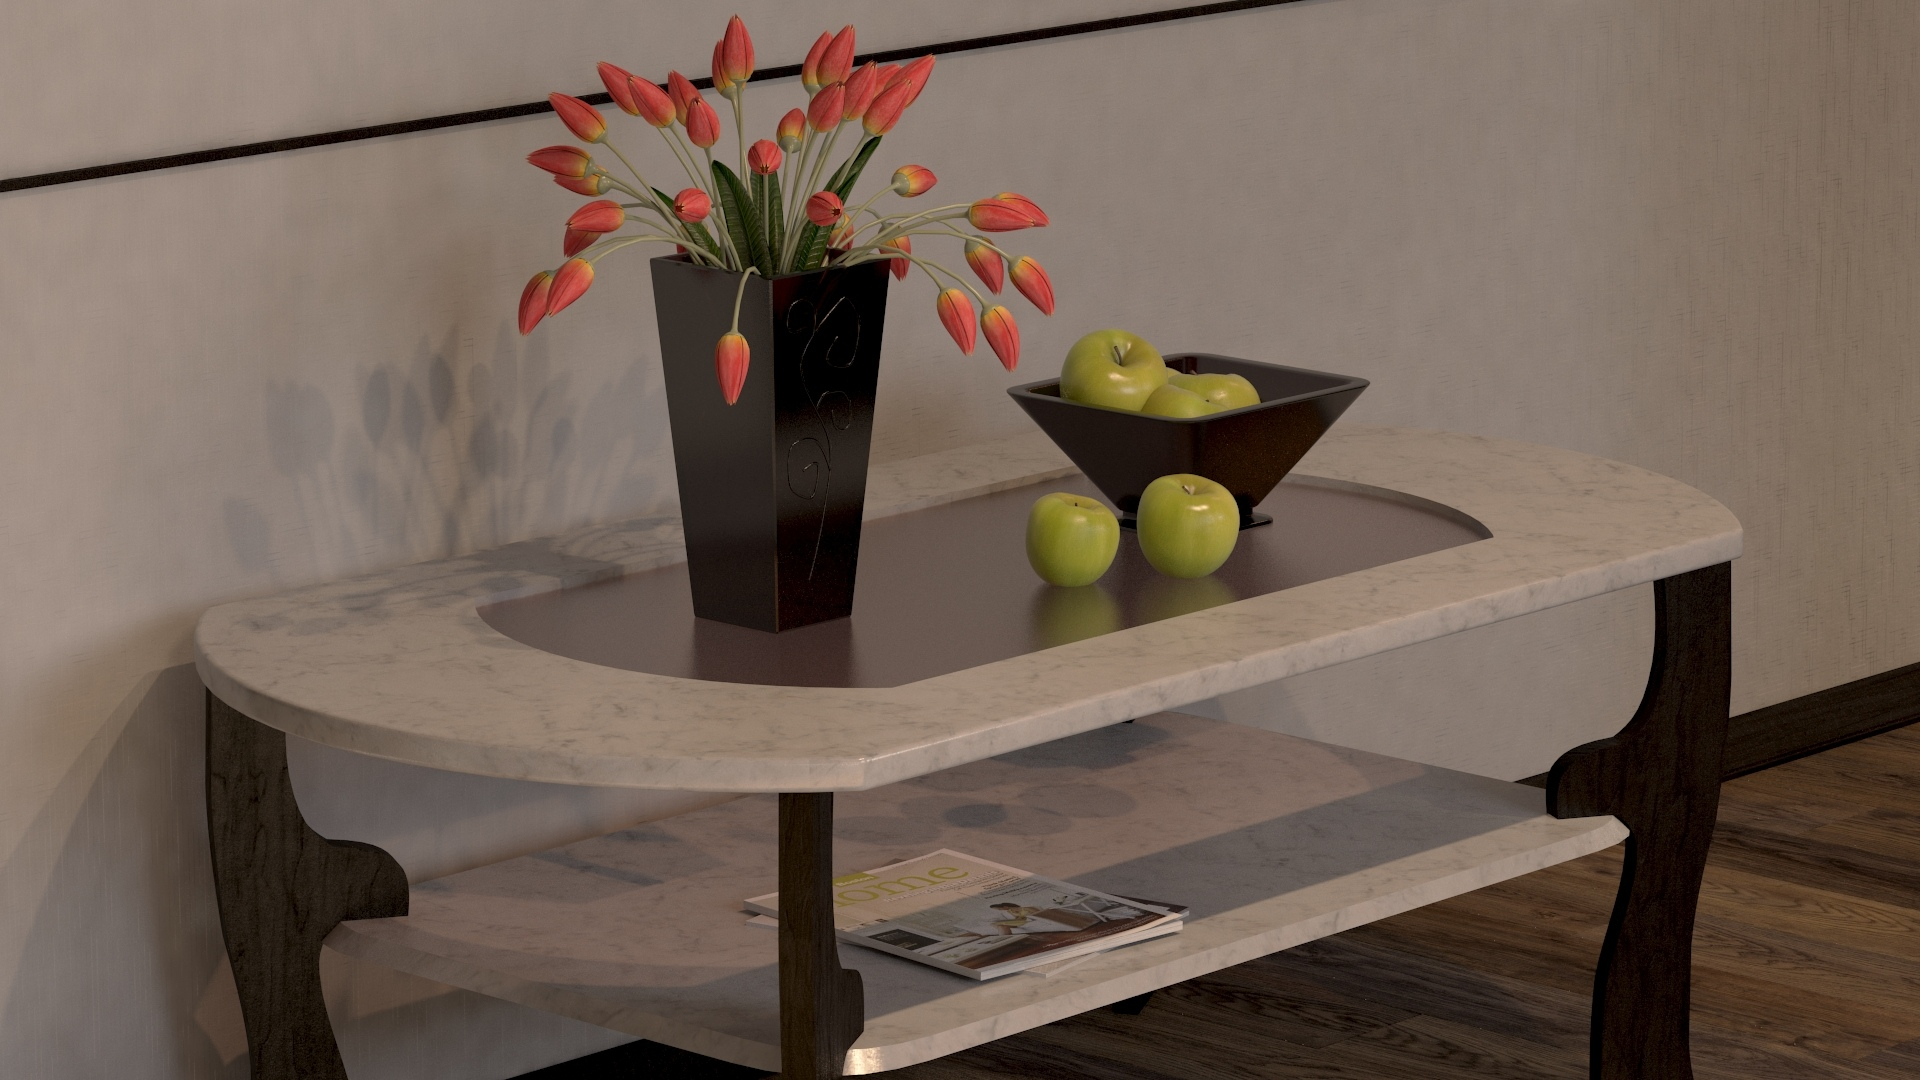 My study work final in 3d max vray 3.0 image